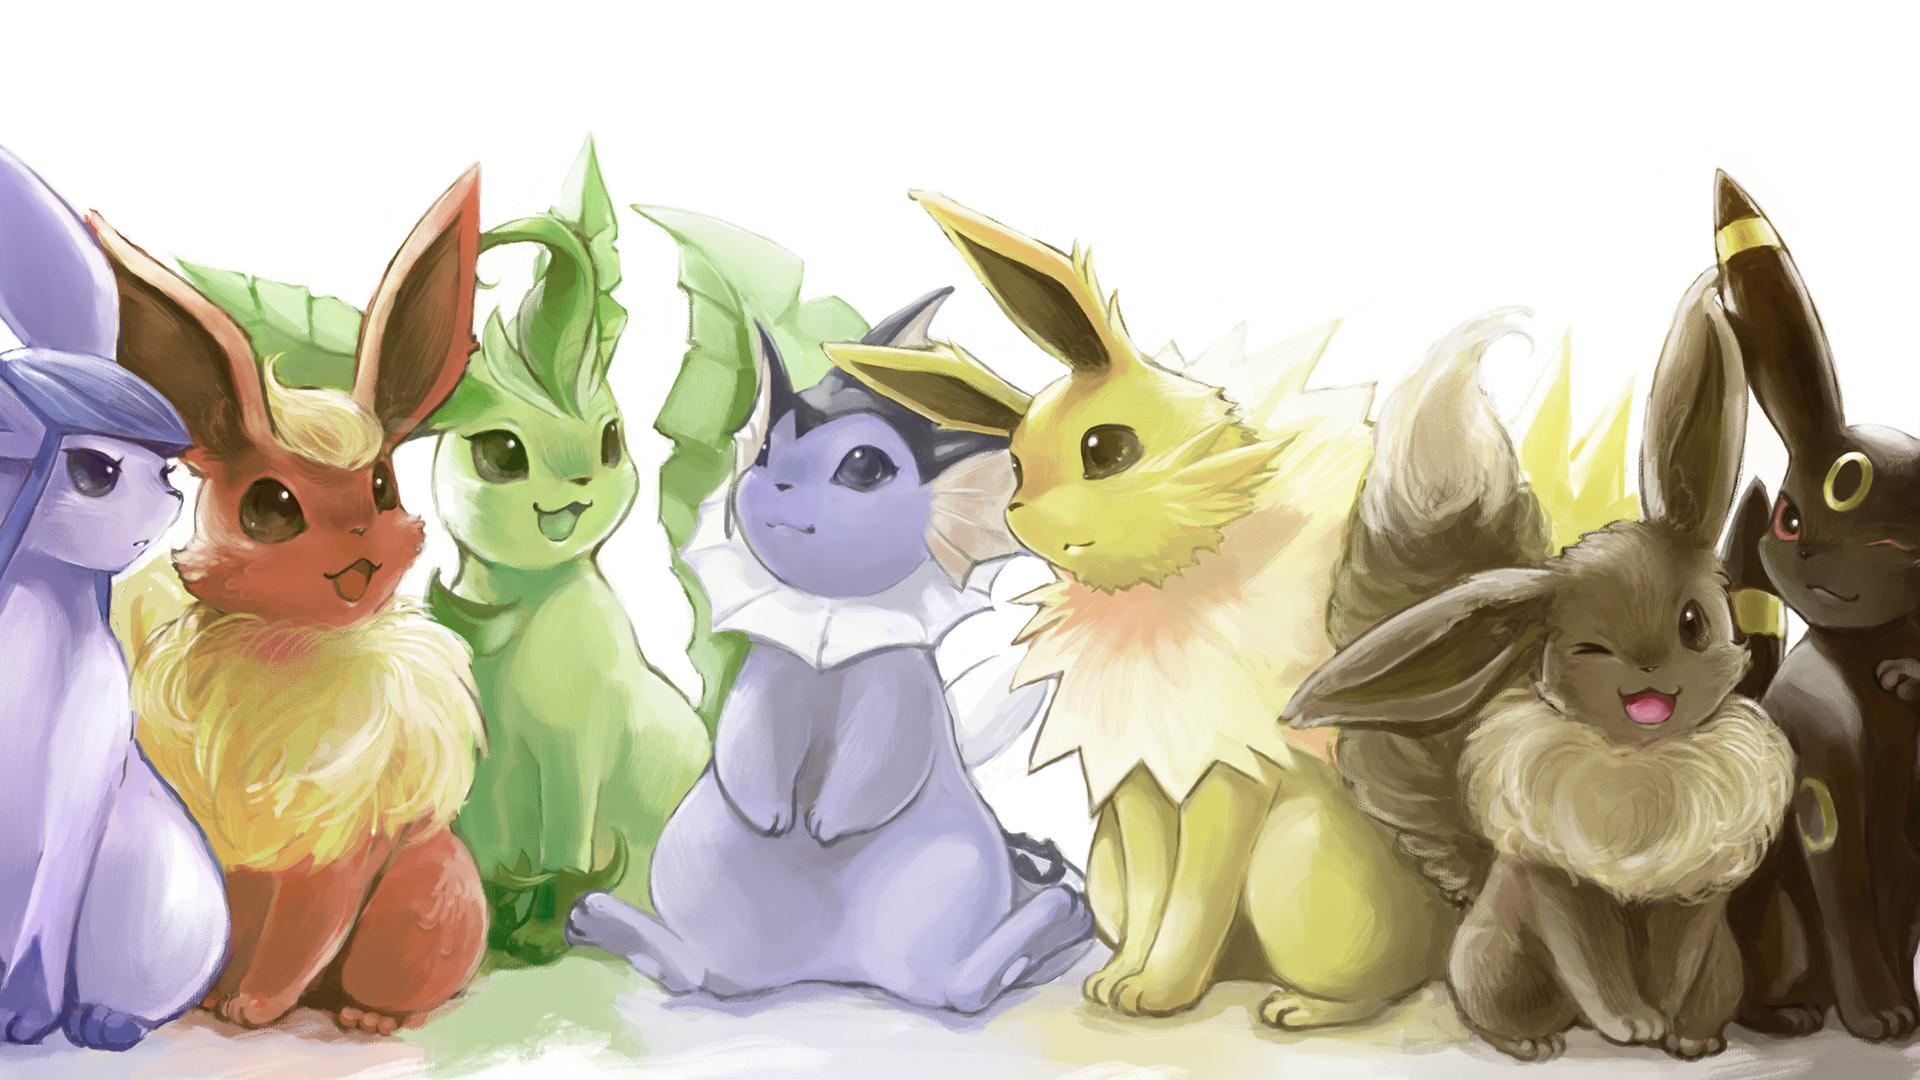 Res: 1920x1080, Cute Pokemon Wallpapers High Quality